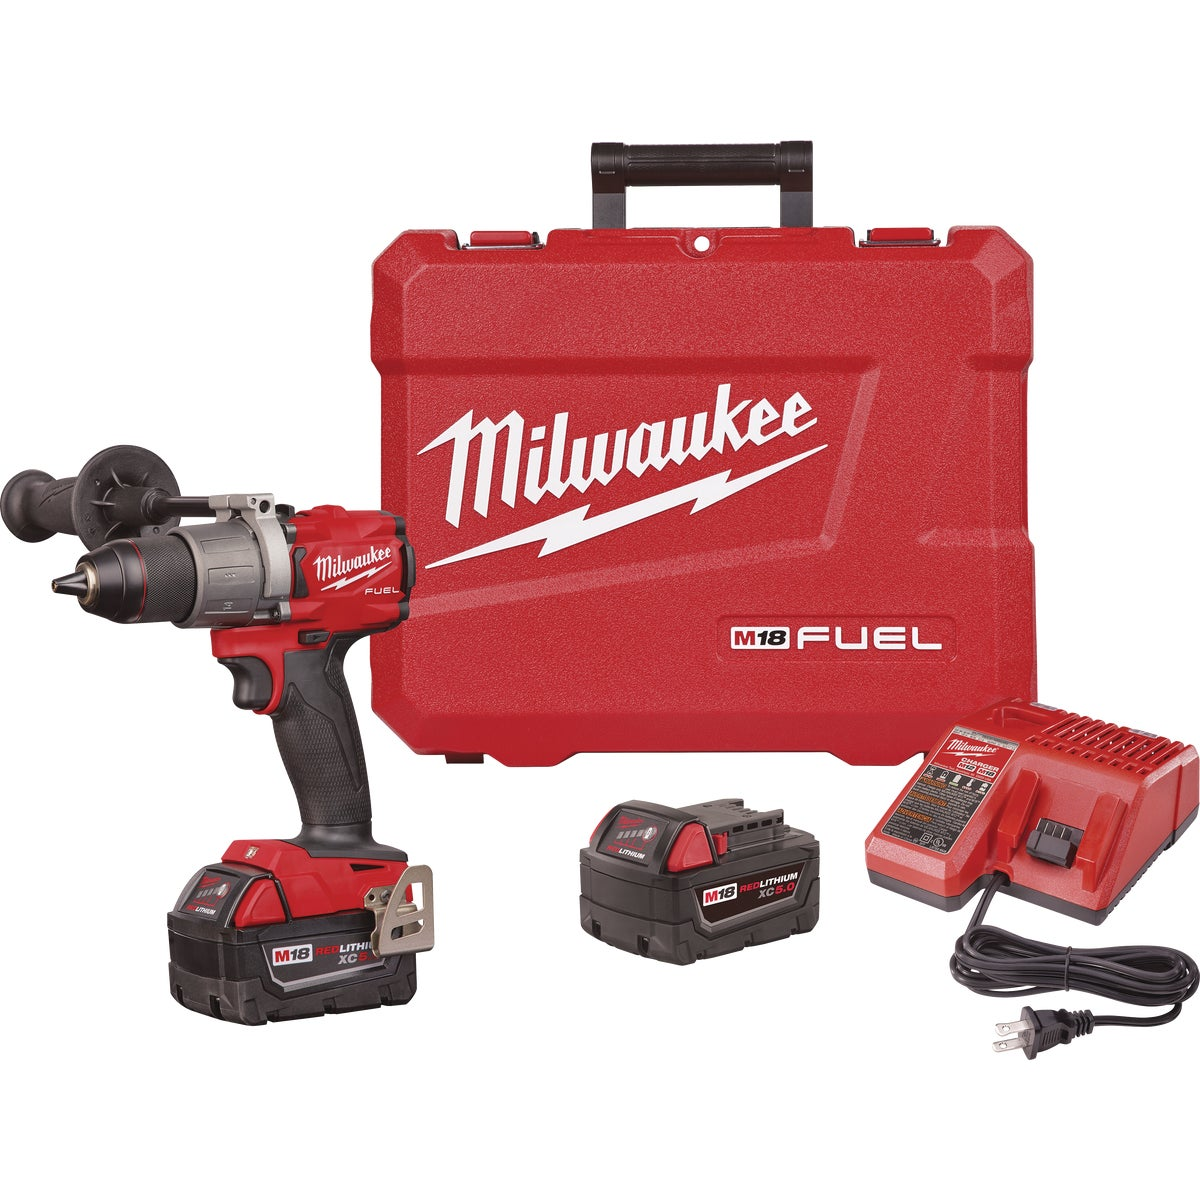 "M18 FUEL 1/2"" DRILL - 2603-22 by Milwaukee Elec Tool"